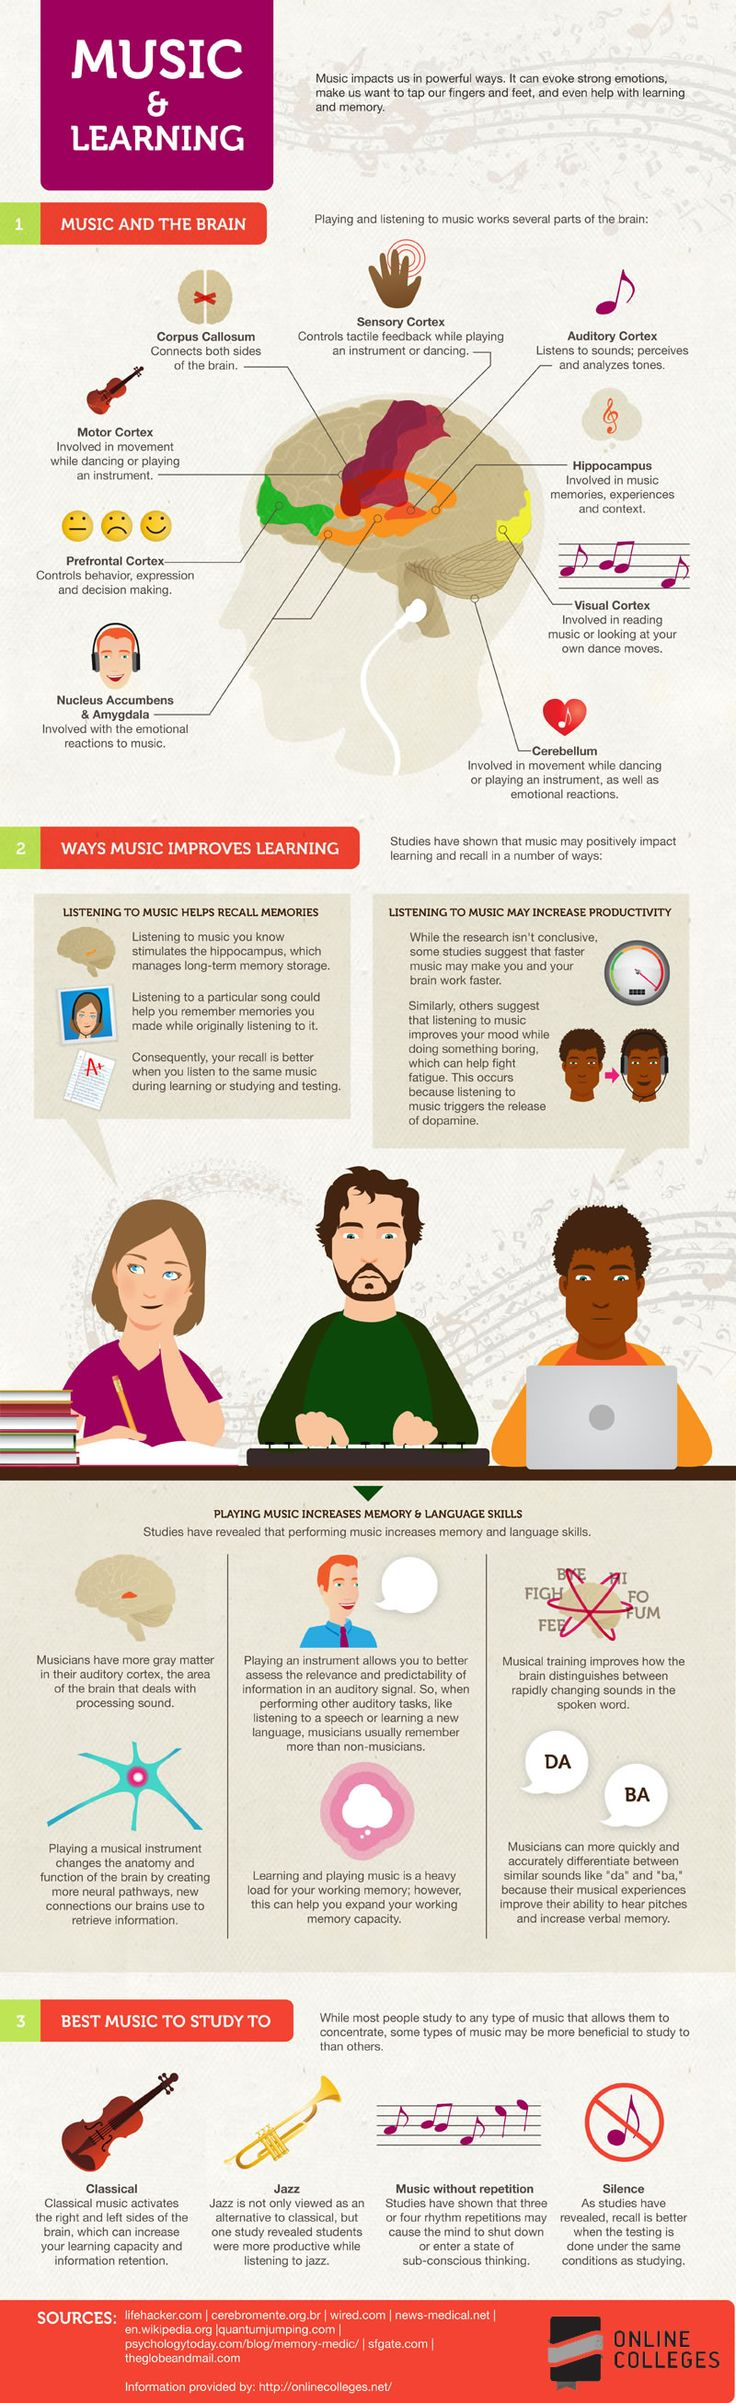 Music & Learning via http://i.imgur.com/qoUlSt1.jpg By AJgloe On August 24, 2016 at 07:27AM, Also Find More Infographics at @ http://www.li...